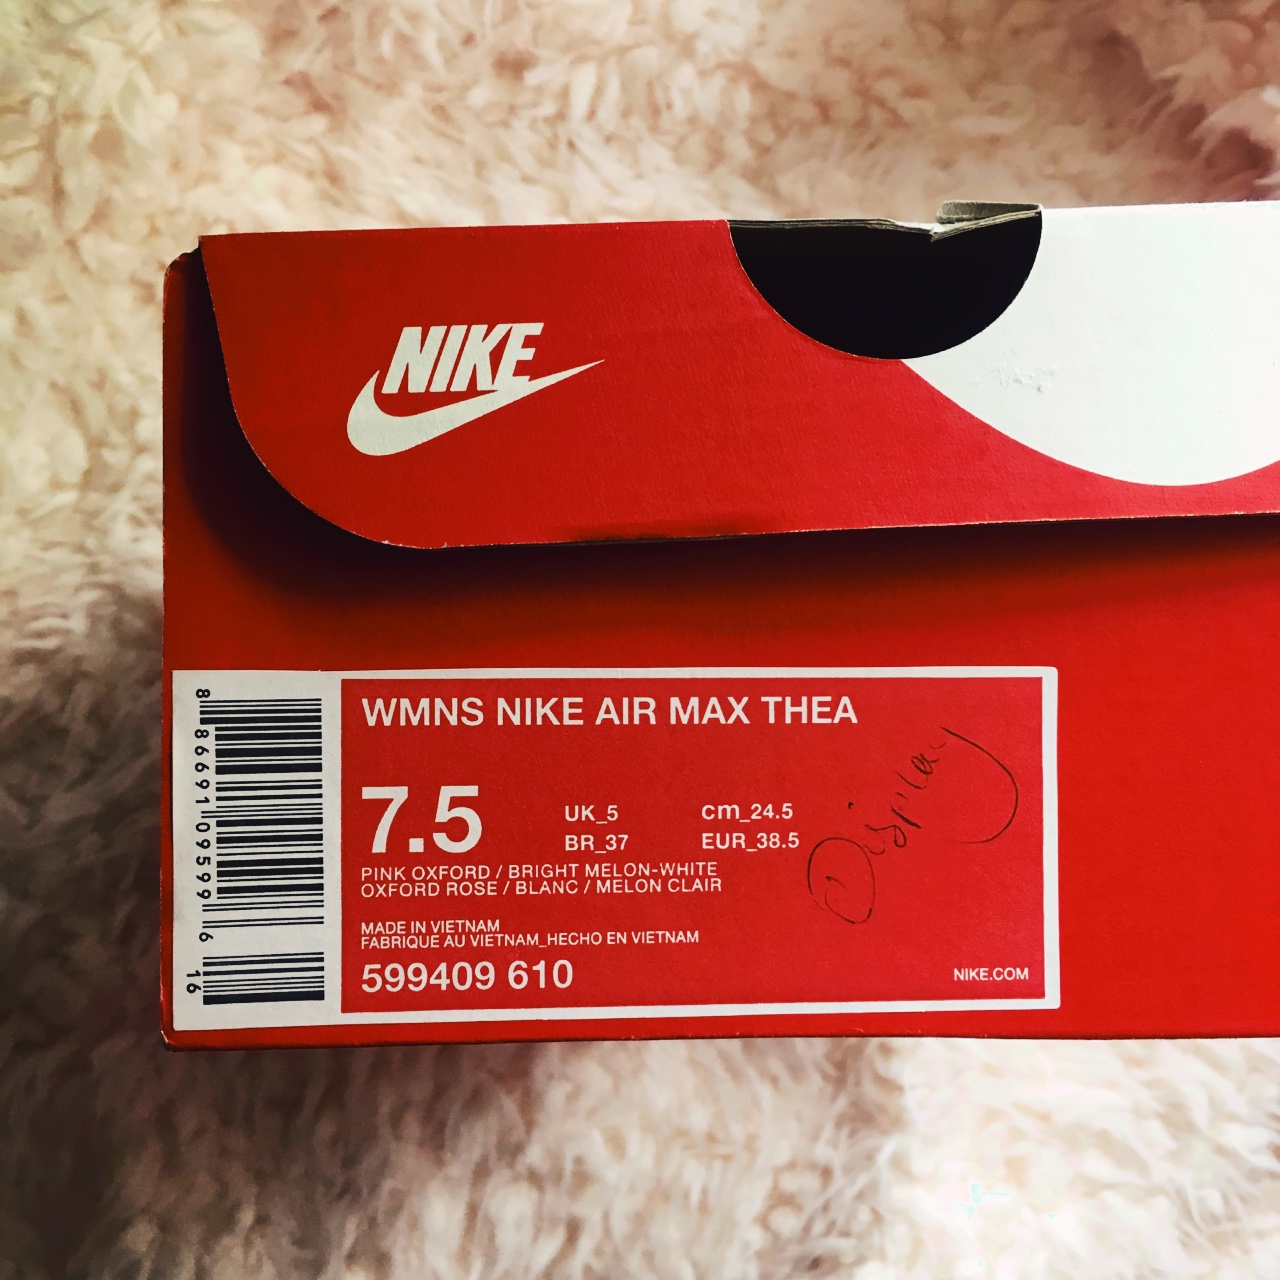 brand new nike air max thea flyknit trainers in Depop